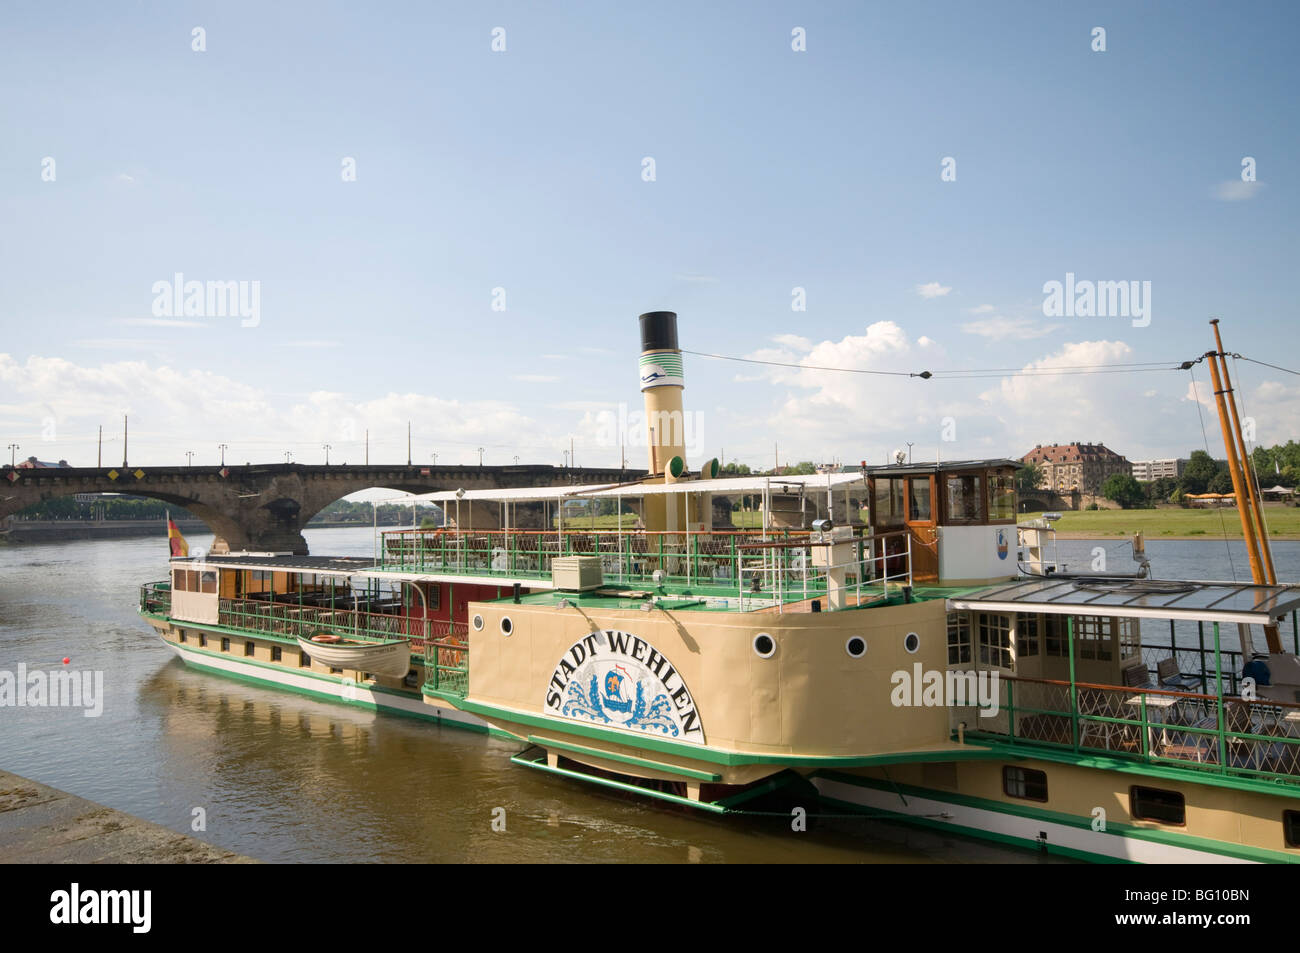 Paddle steamship on Elbe River, Dresden, Saxony, Germany, Europe - Stock Image